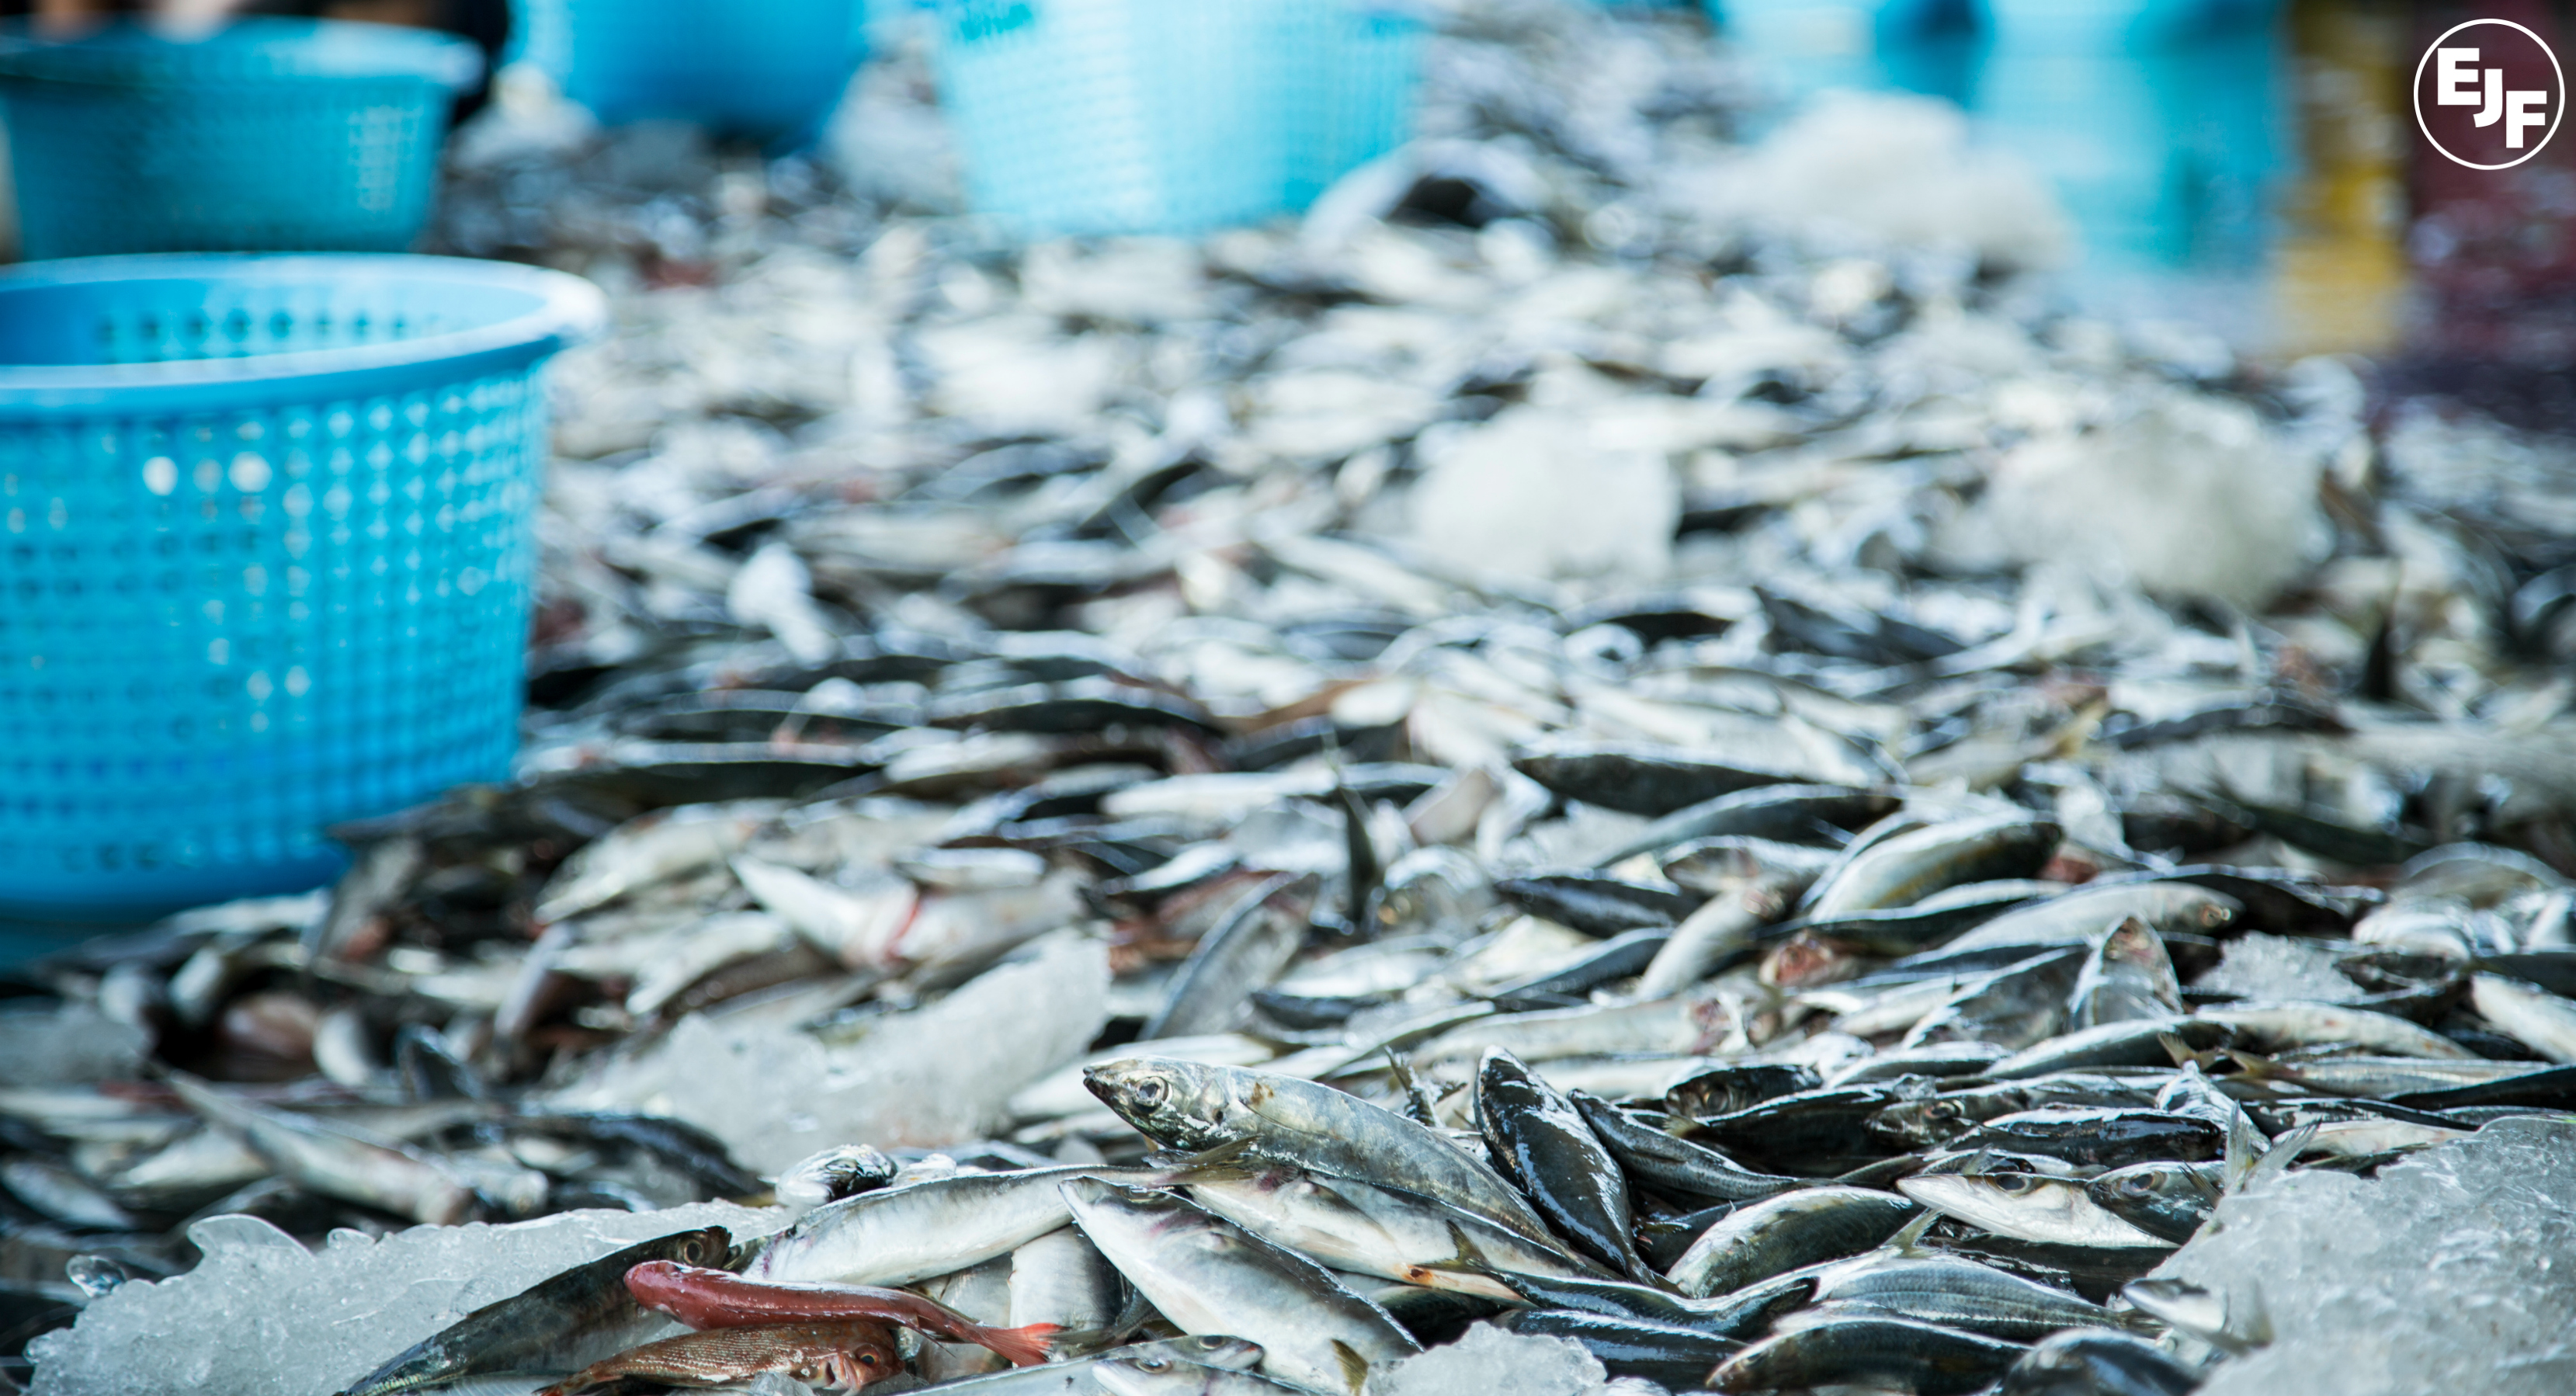 EU to ban fish imports from Sri Lanka for illegal fishing